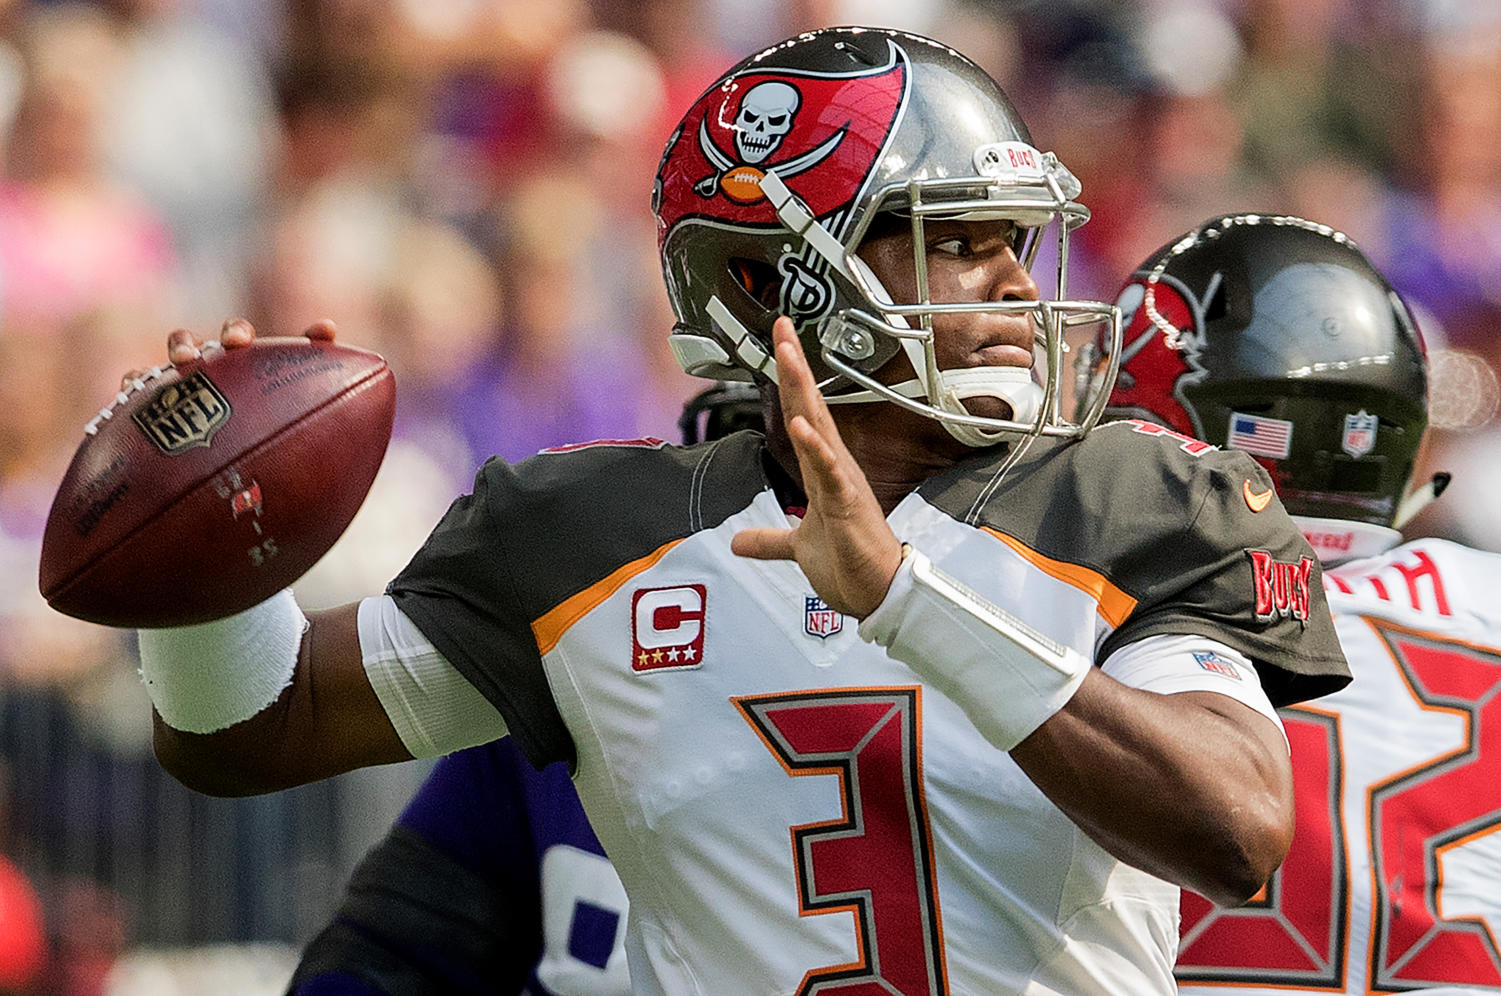 Tampa Bay quarterback Jameis Winston (3) attempts a pass in the first quarter against the Minnesota Vikings at U.S. Bank Stadium in Minneapolis on Sept. 24, 2017. (Carlos Gonzalez/Minneapolis Star Tribune/TNS)